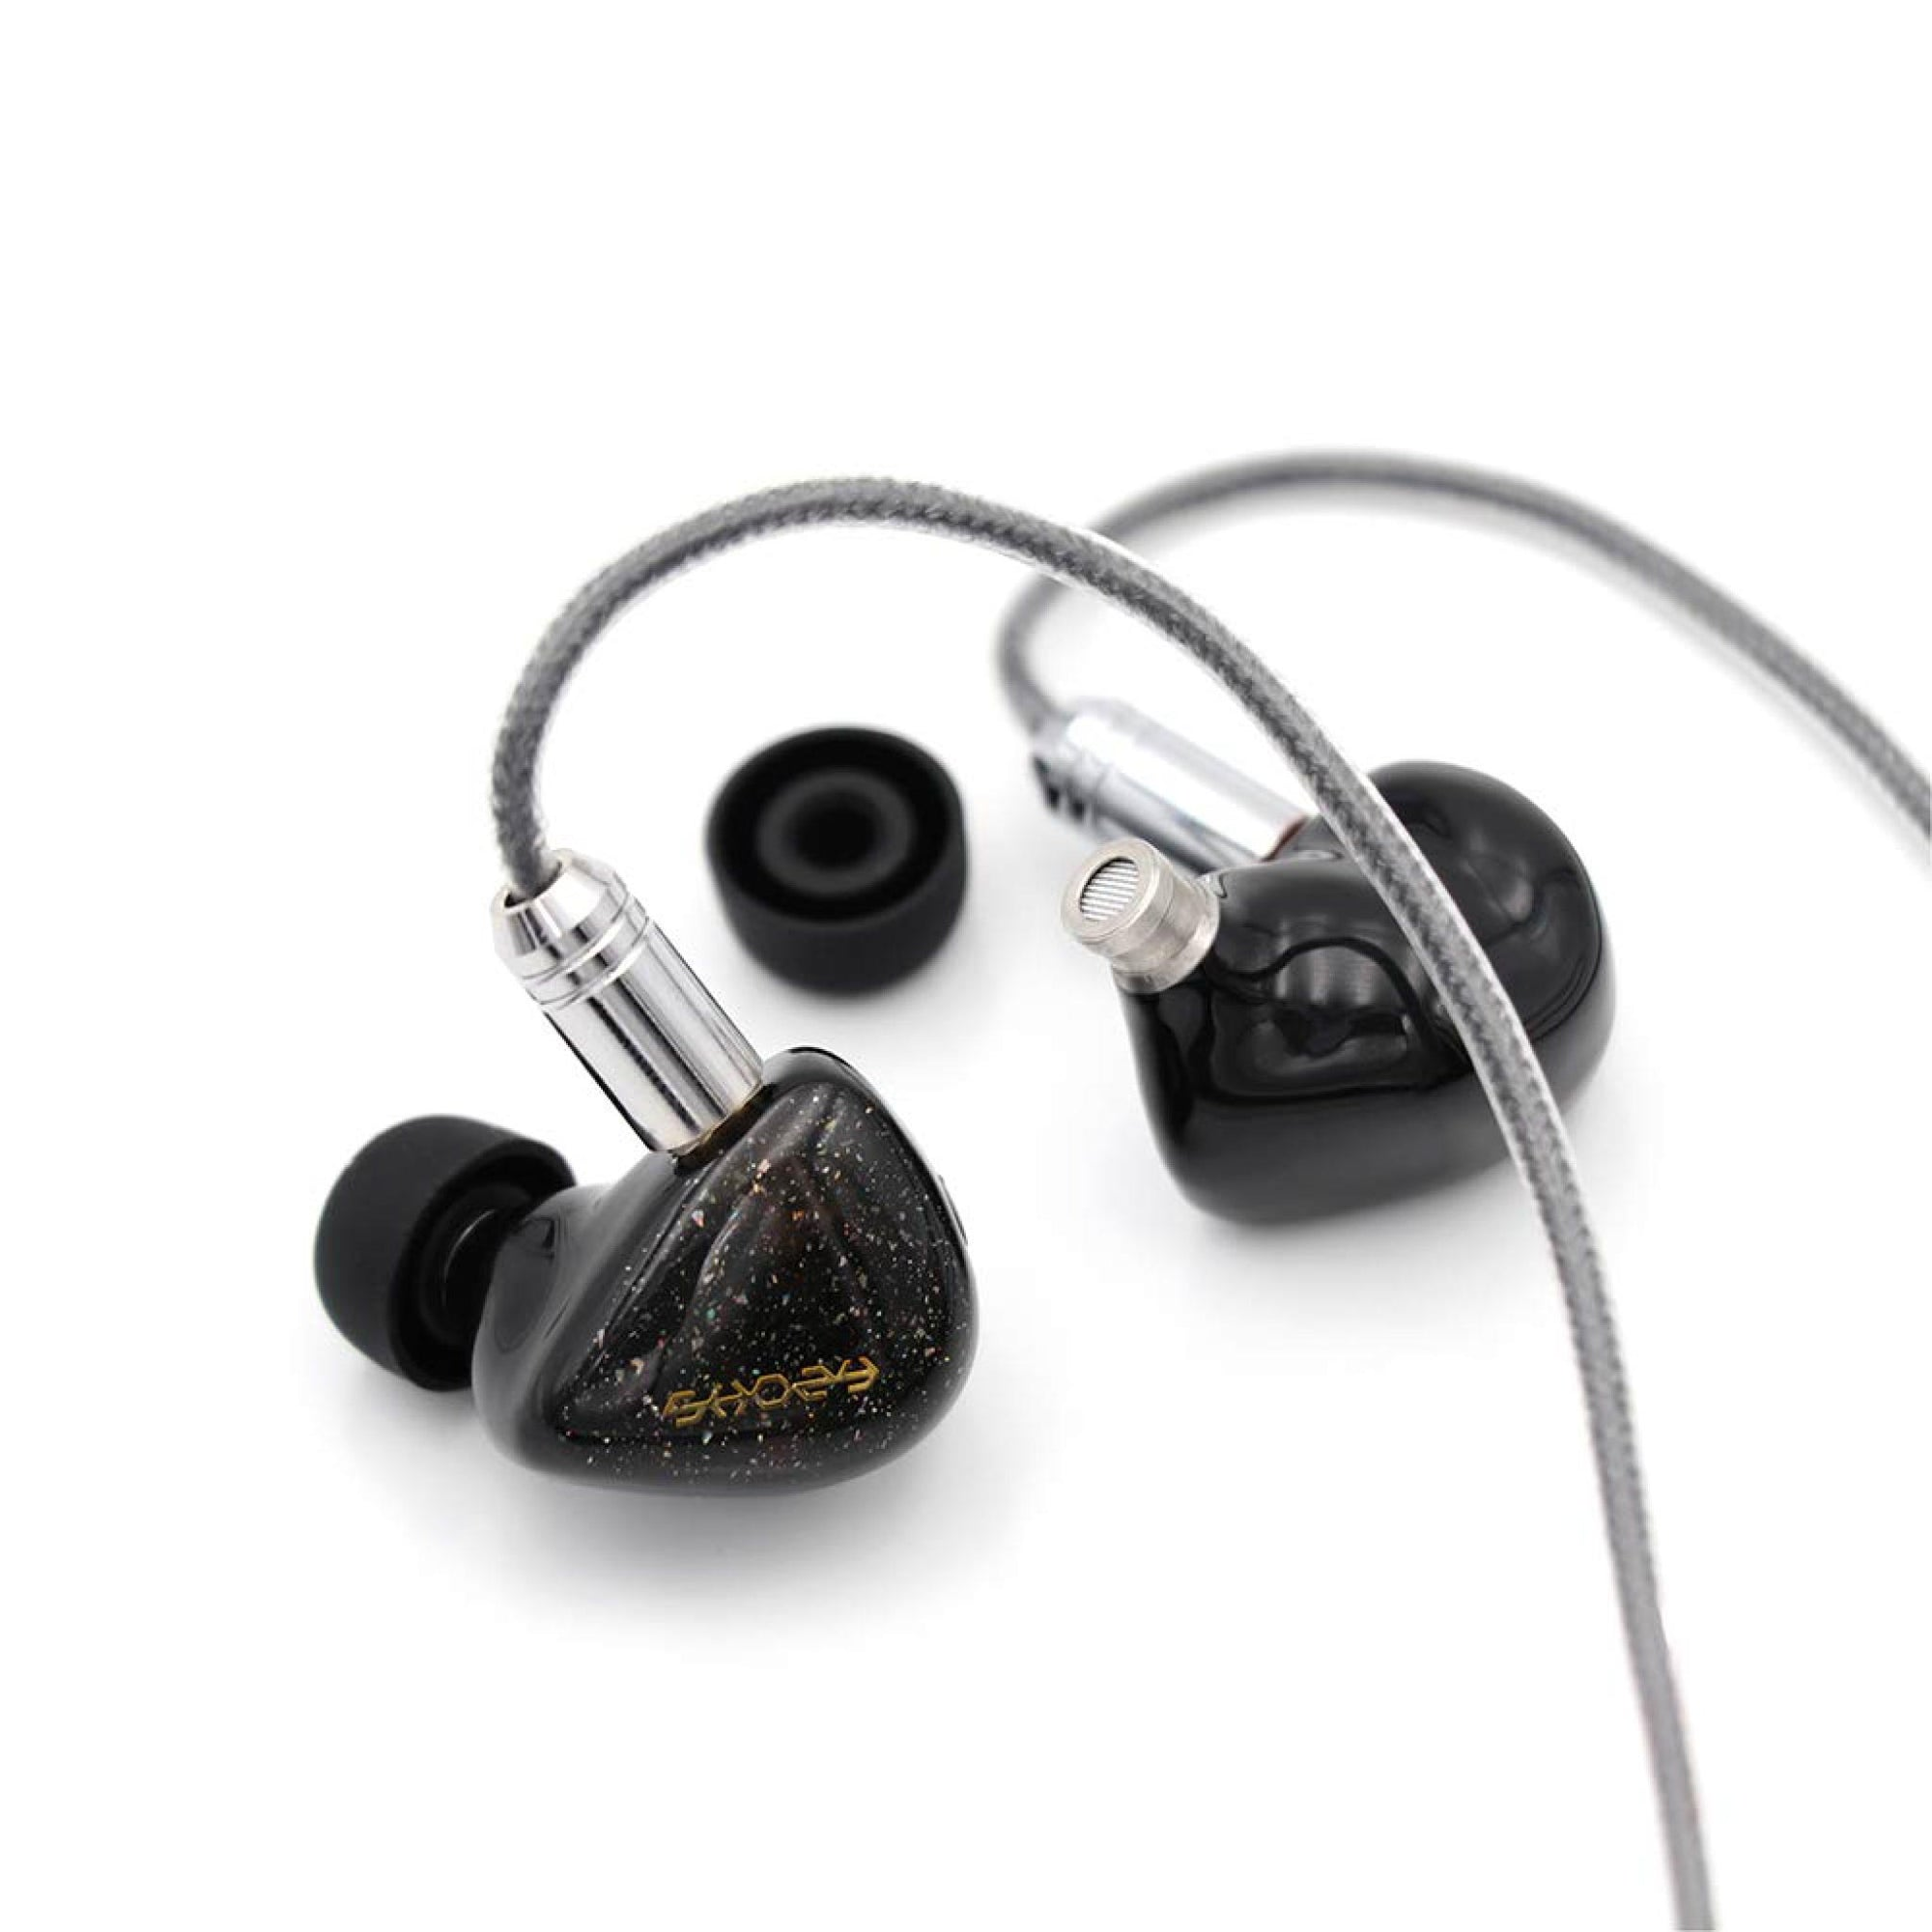 Shozy Form 1.1 Dual Driver Hybrid in-Ear Earphone - Gears For Ears